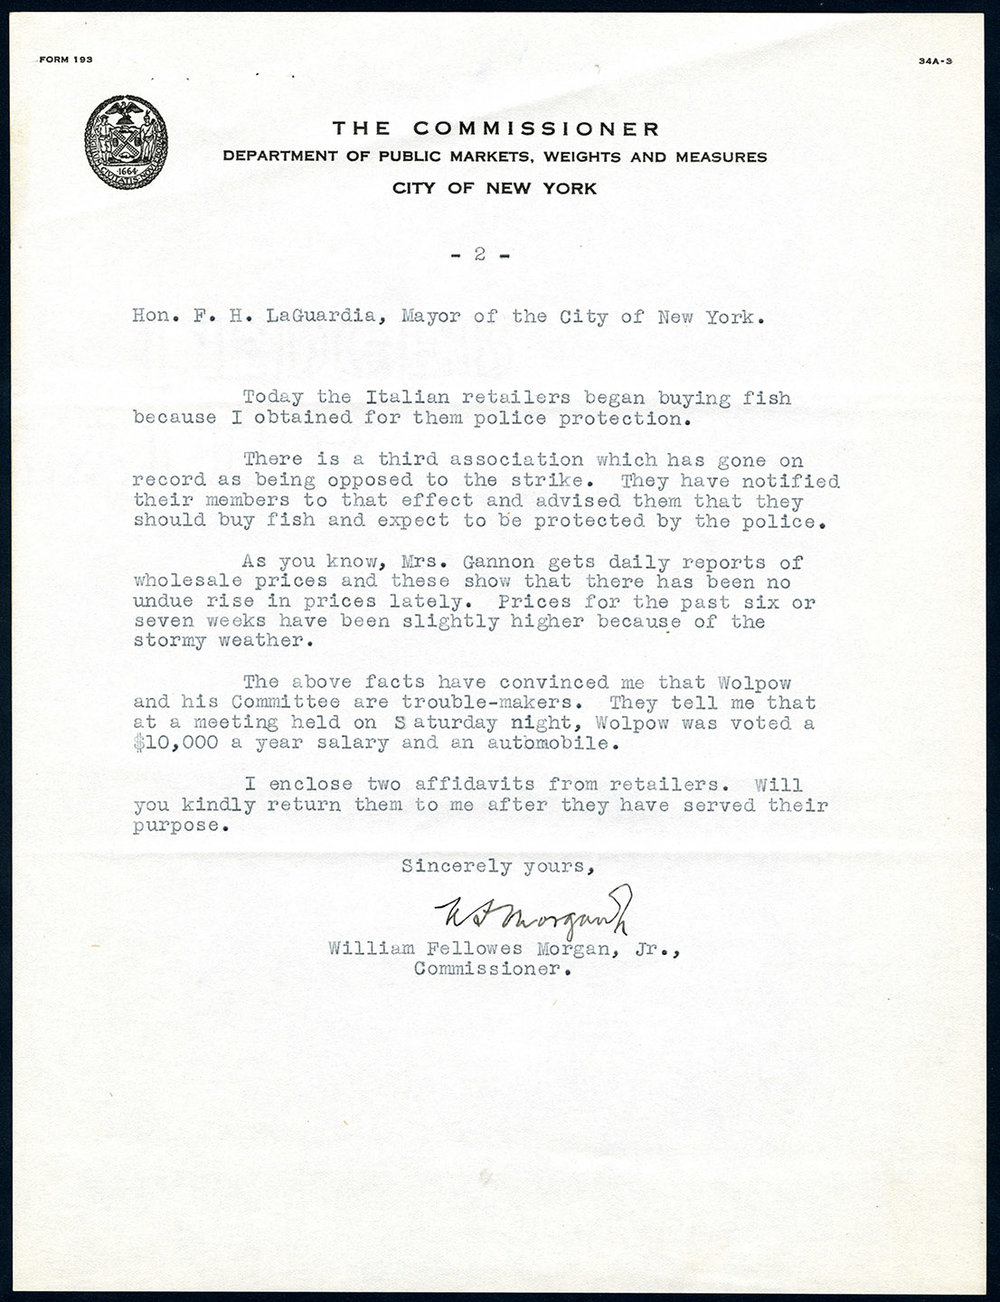 Letter to Mayor LaGuardia from William Fellowes Morgan, Jr., Commissioner of the Department of Public Markets, Weights and Measures, Oct. 16, 1934. Mayor LaGuardia Collection, NYC Municipal Archives.